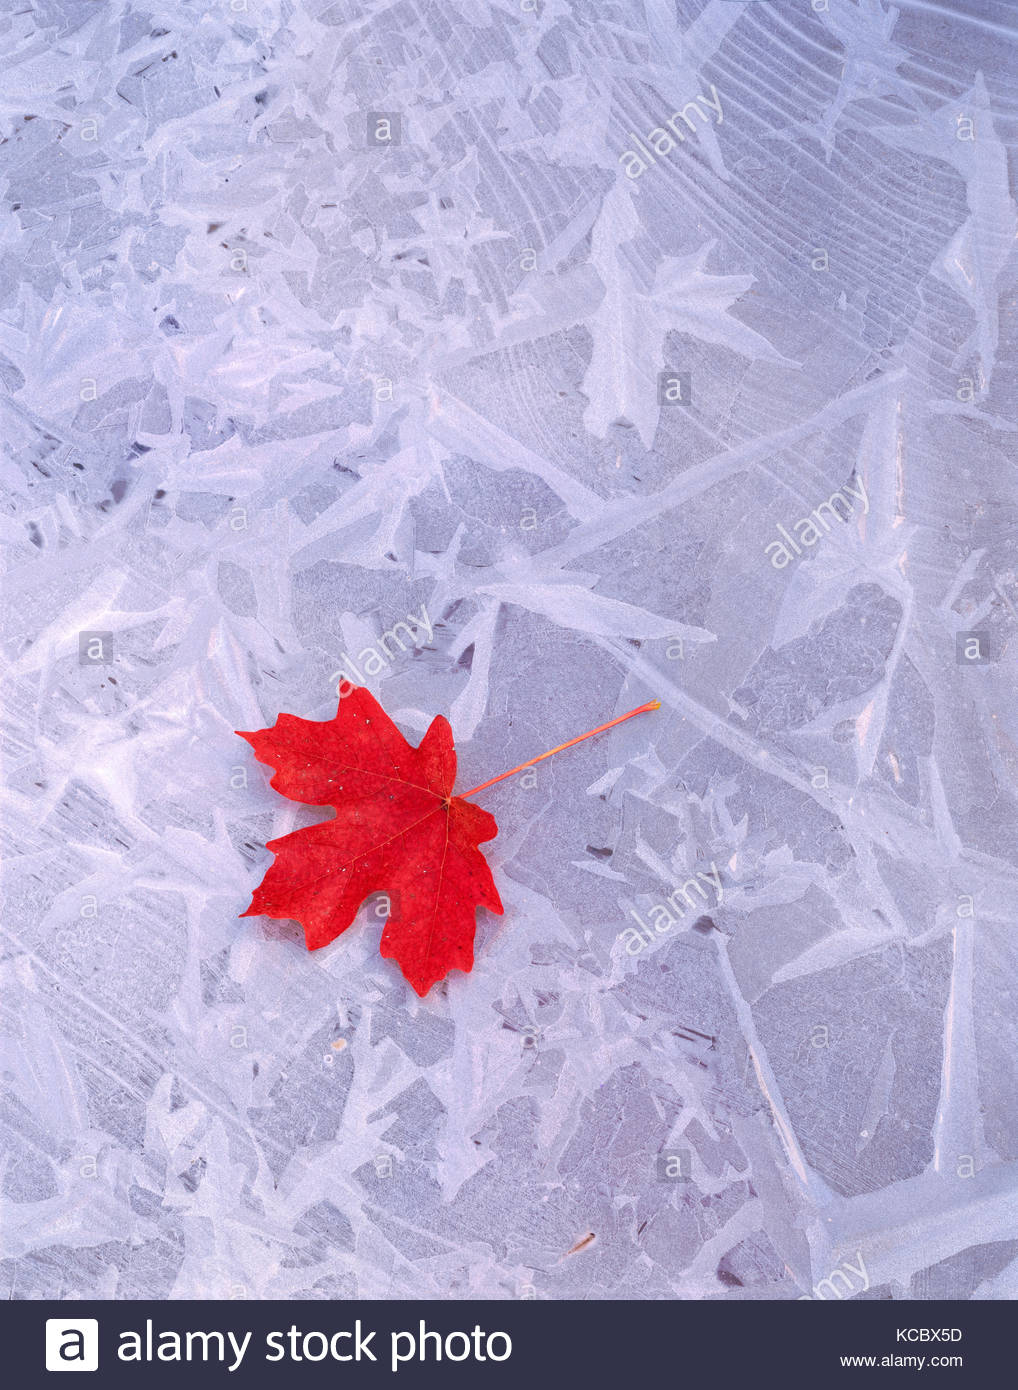 Bigtooth Maple Leaf on Ice, Zion National Park, Utah - Stock Image